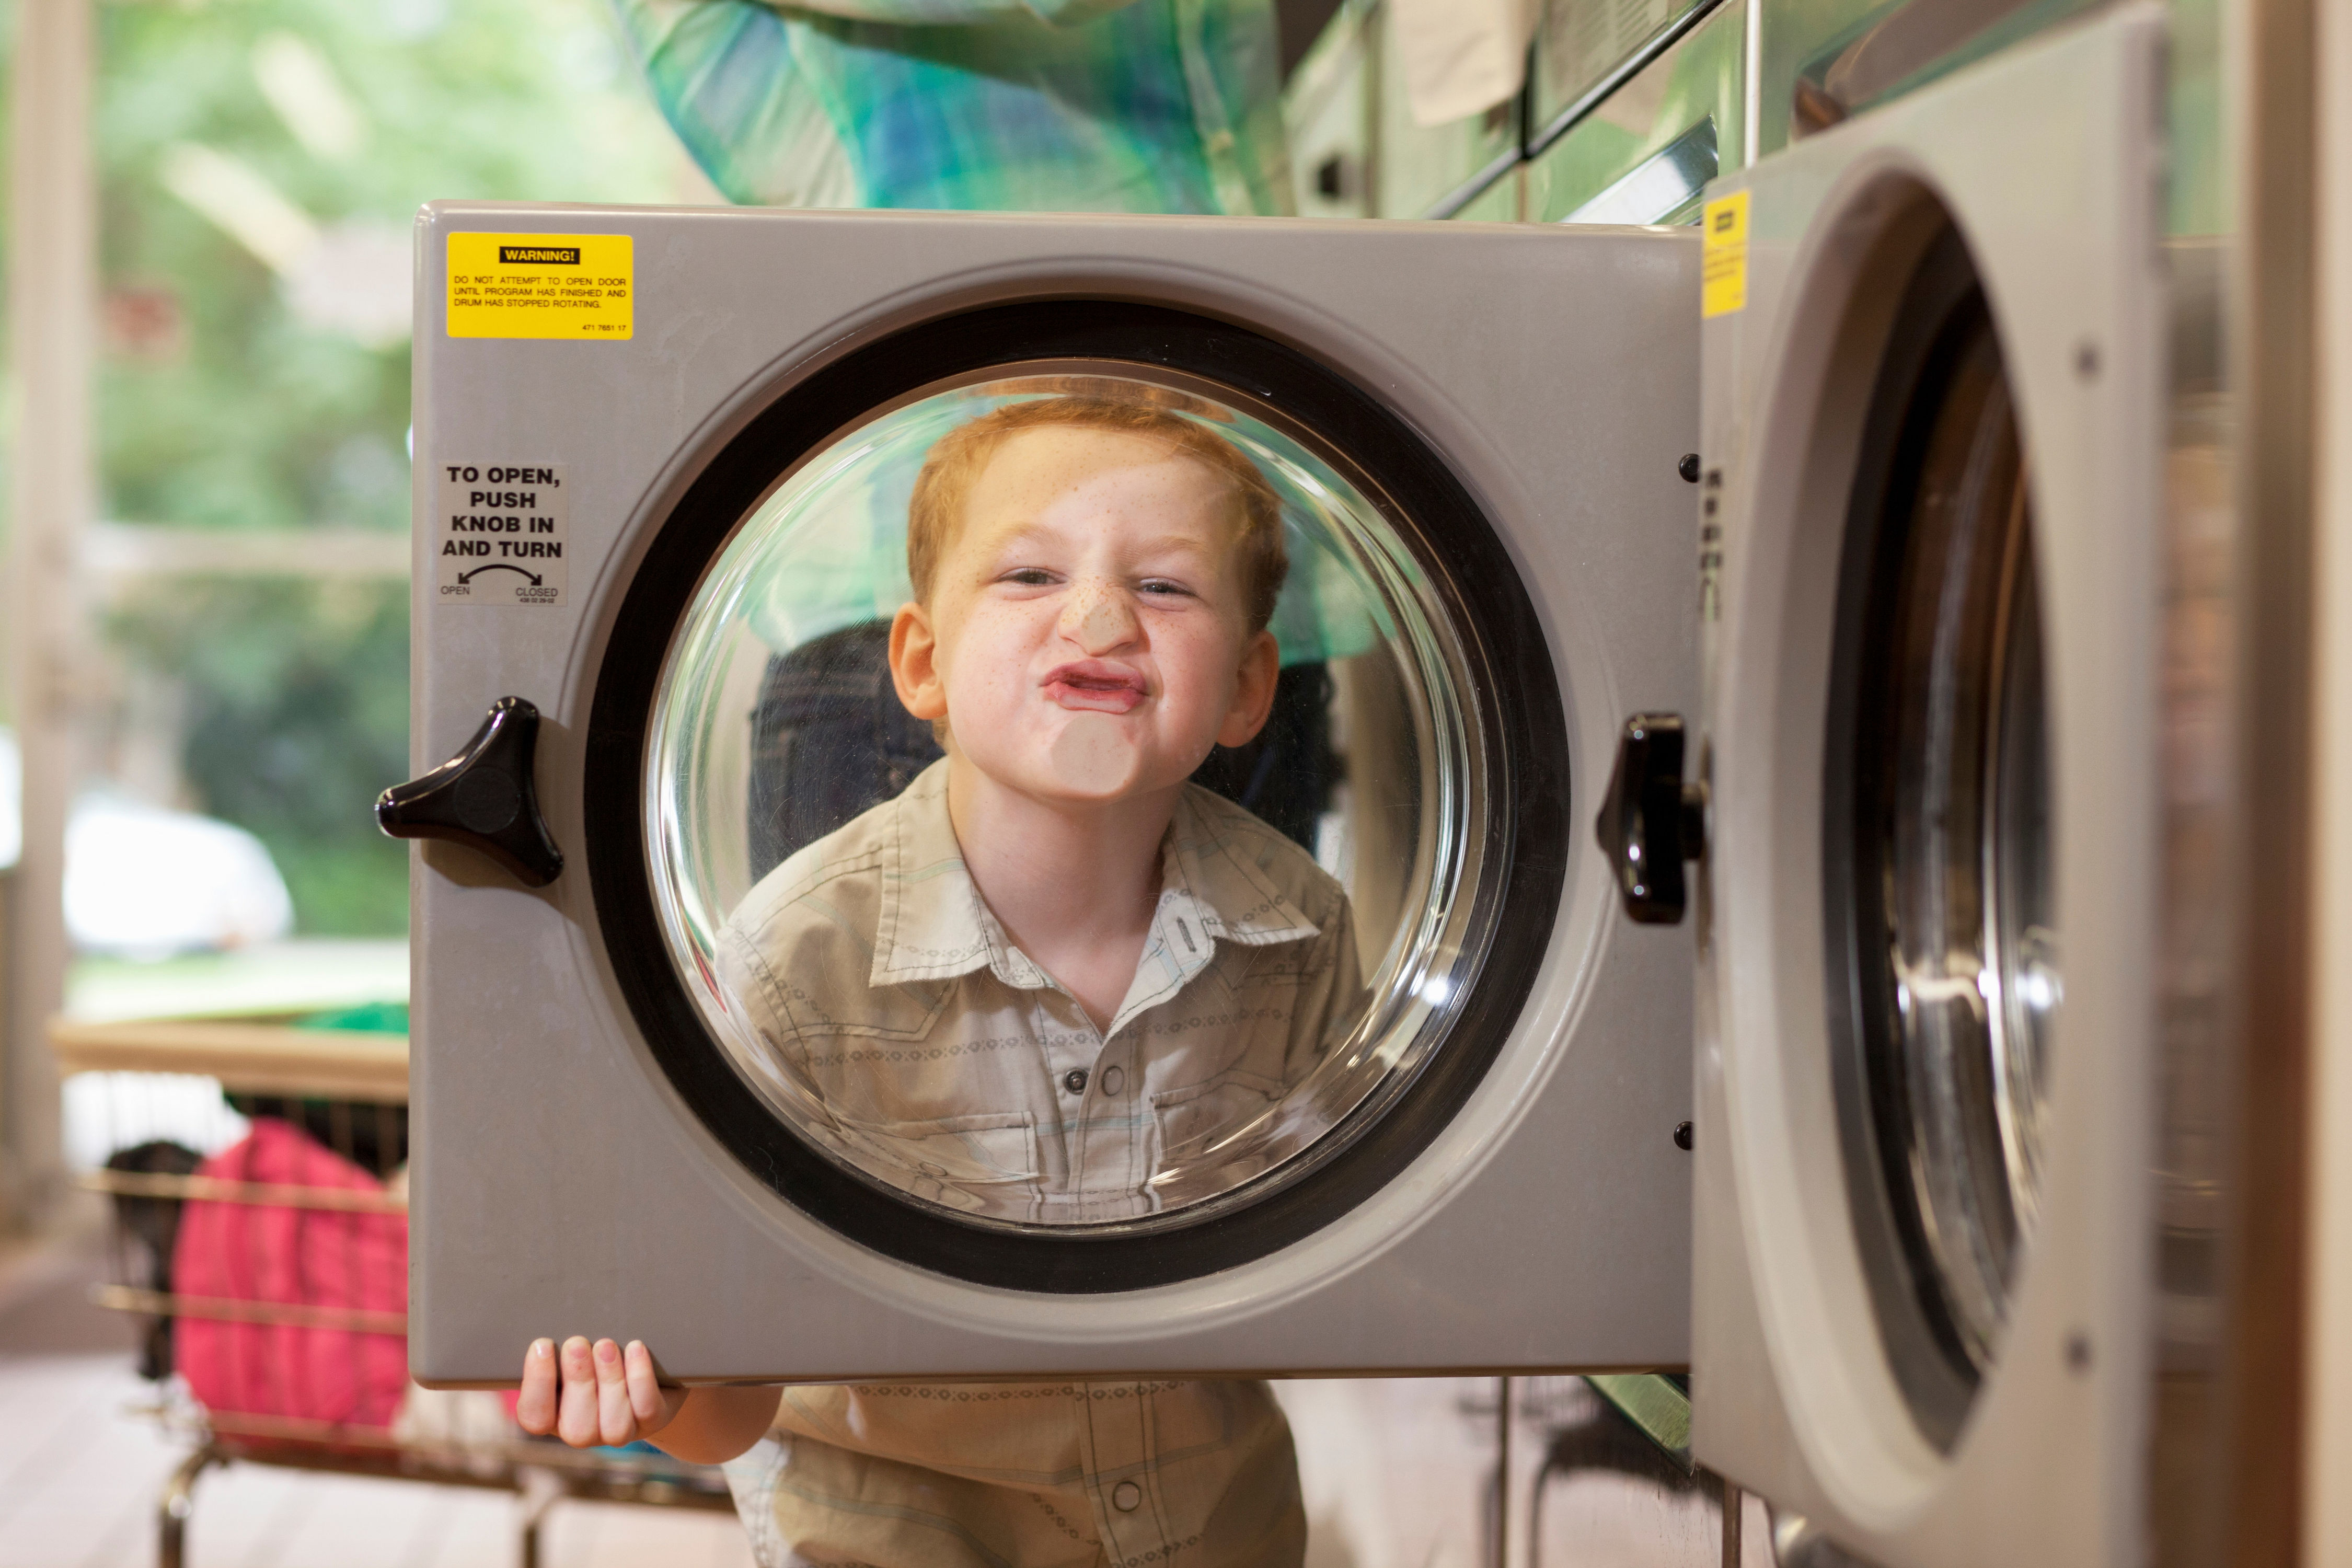 WATCH: 7 Things You Should Never Put in the Washing Machine